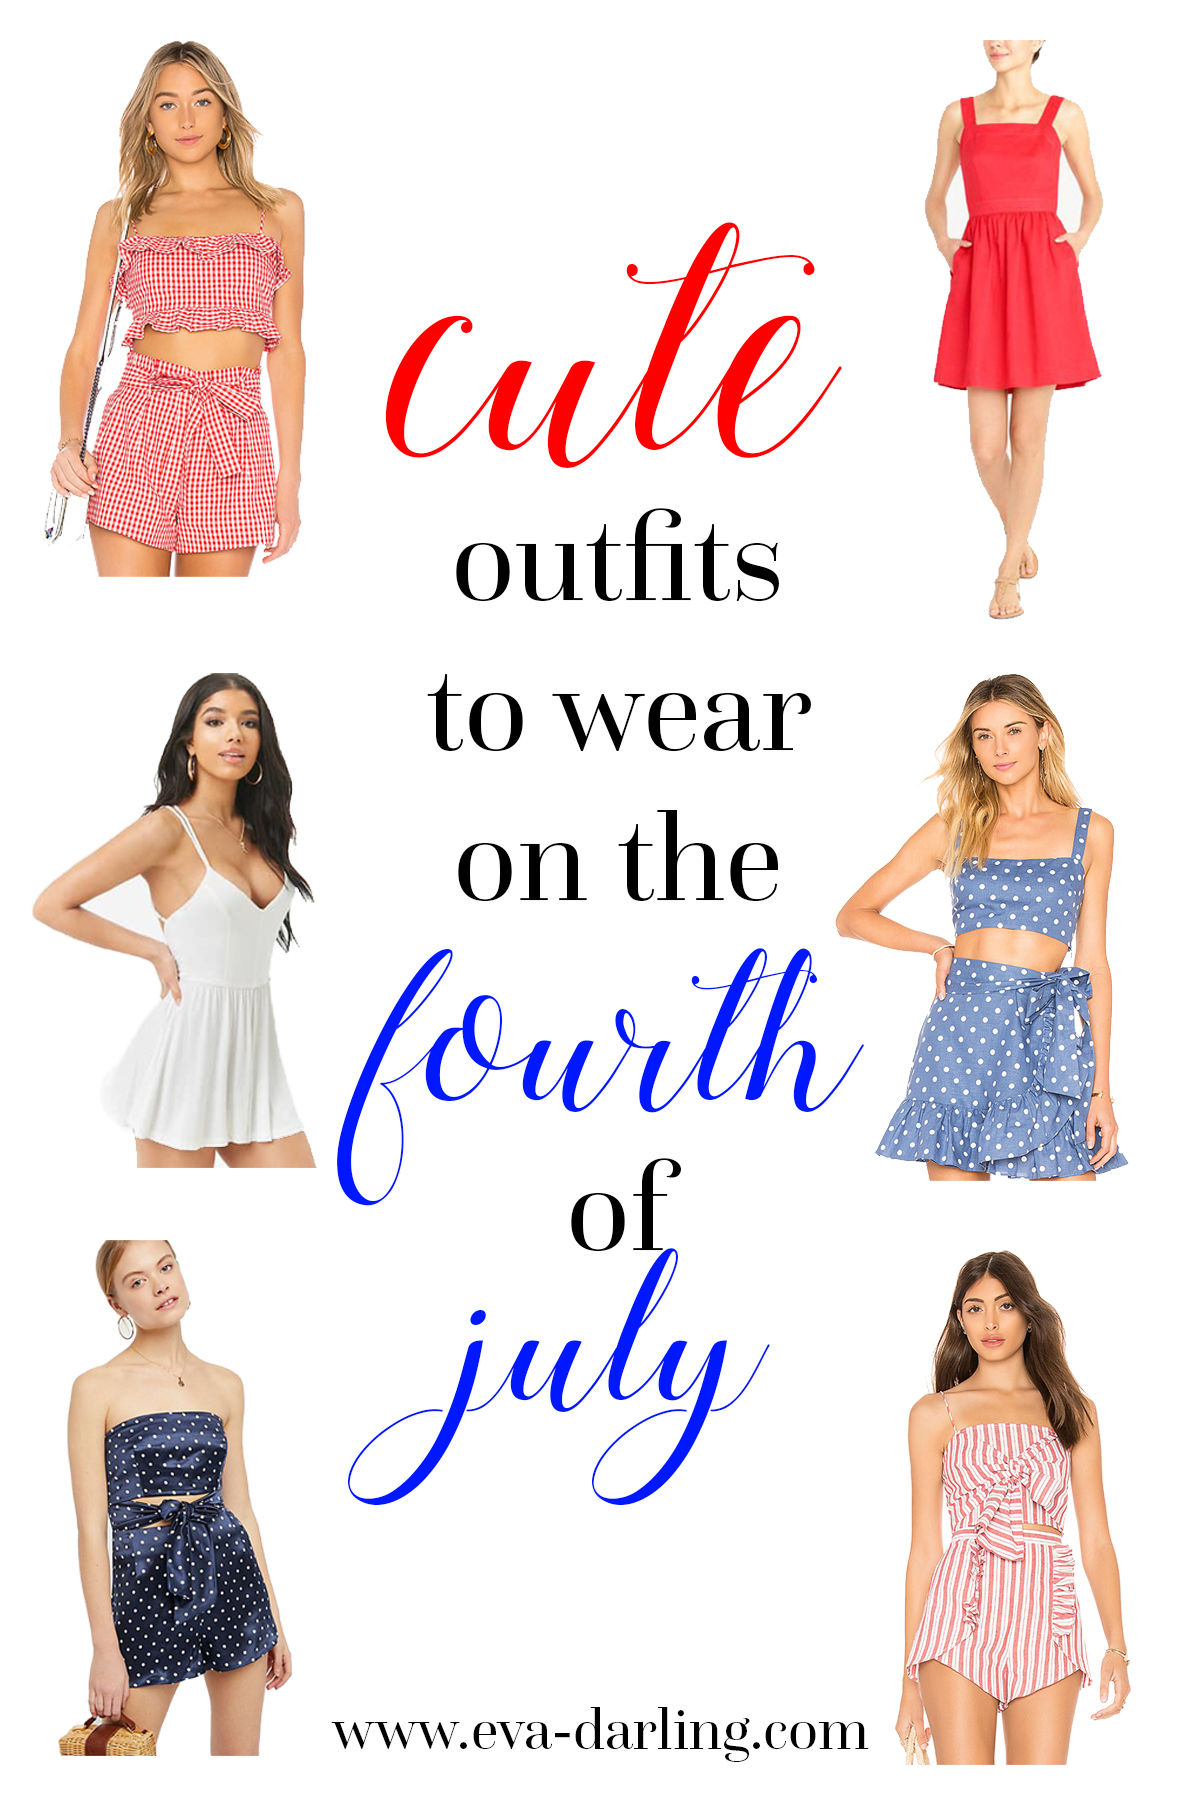 fourth of july 4th independence day revolve privacy please cute outfits to wear clothing guide for teens women patriotic festive crop top wrap skirt matching set striped gingham polka dots romper dress with pockets from j crew j. crew jcrew factory free people forever 21 red white blue